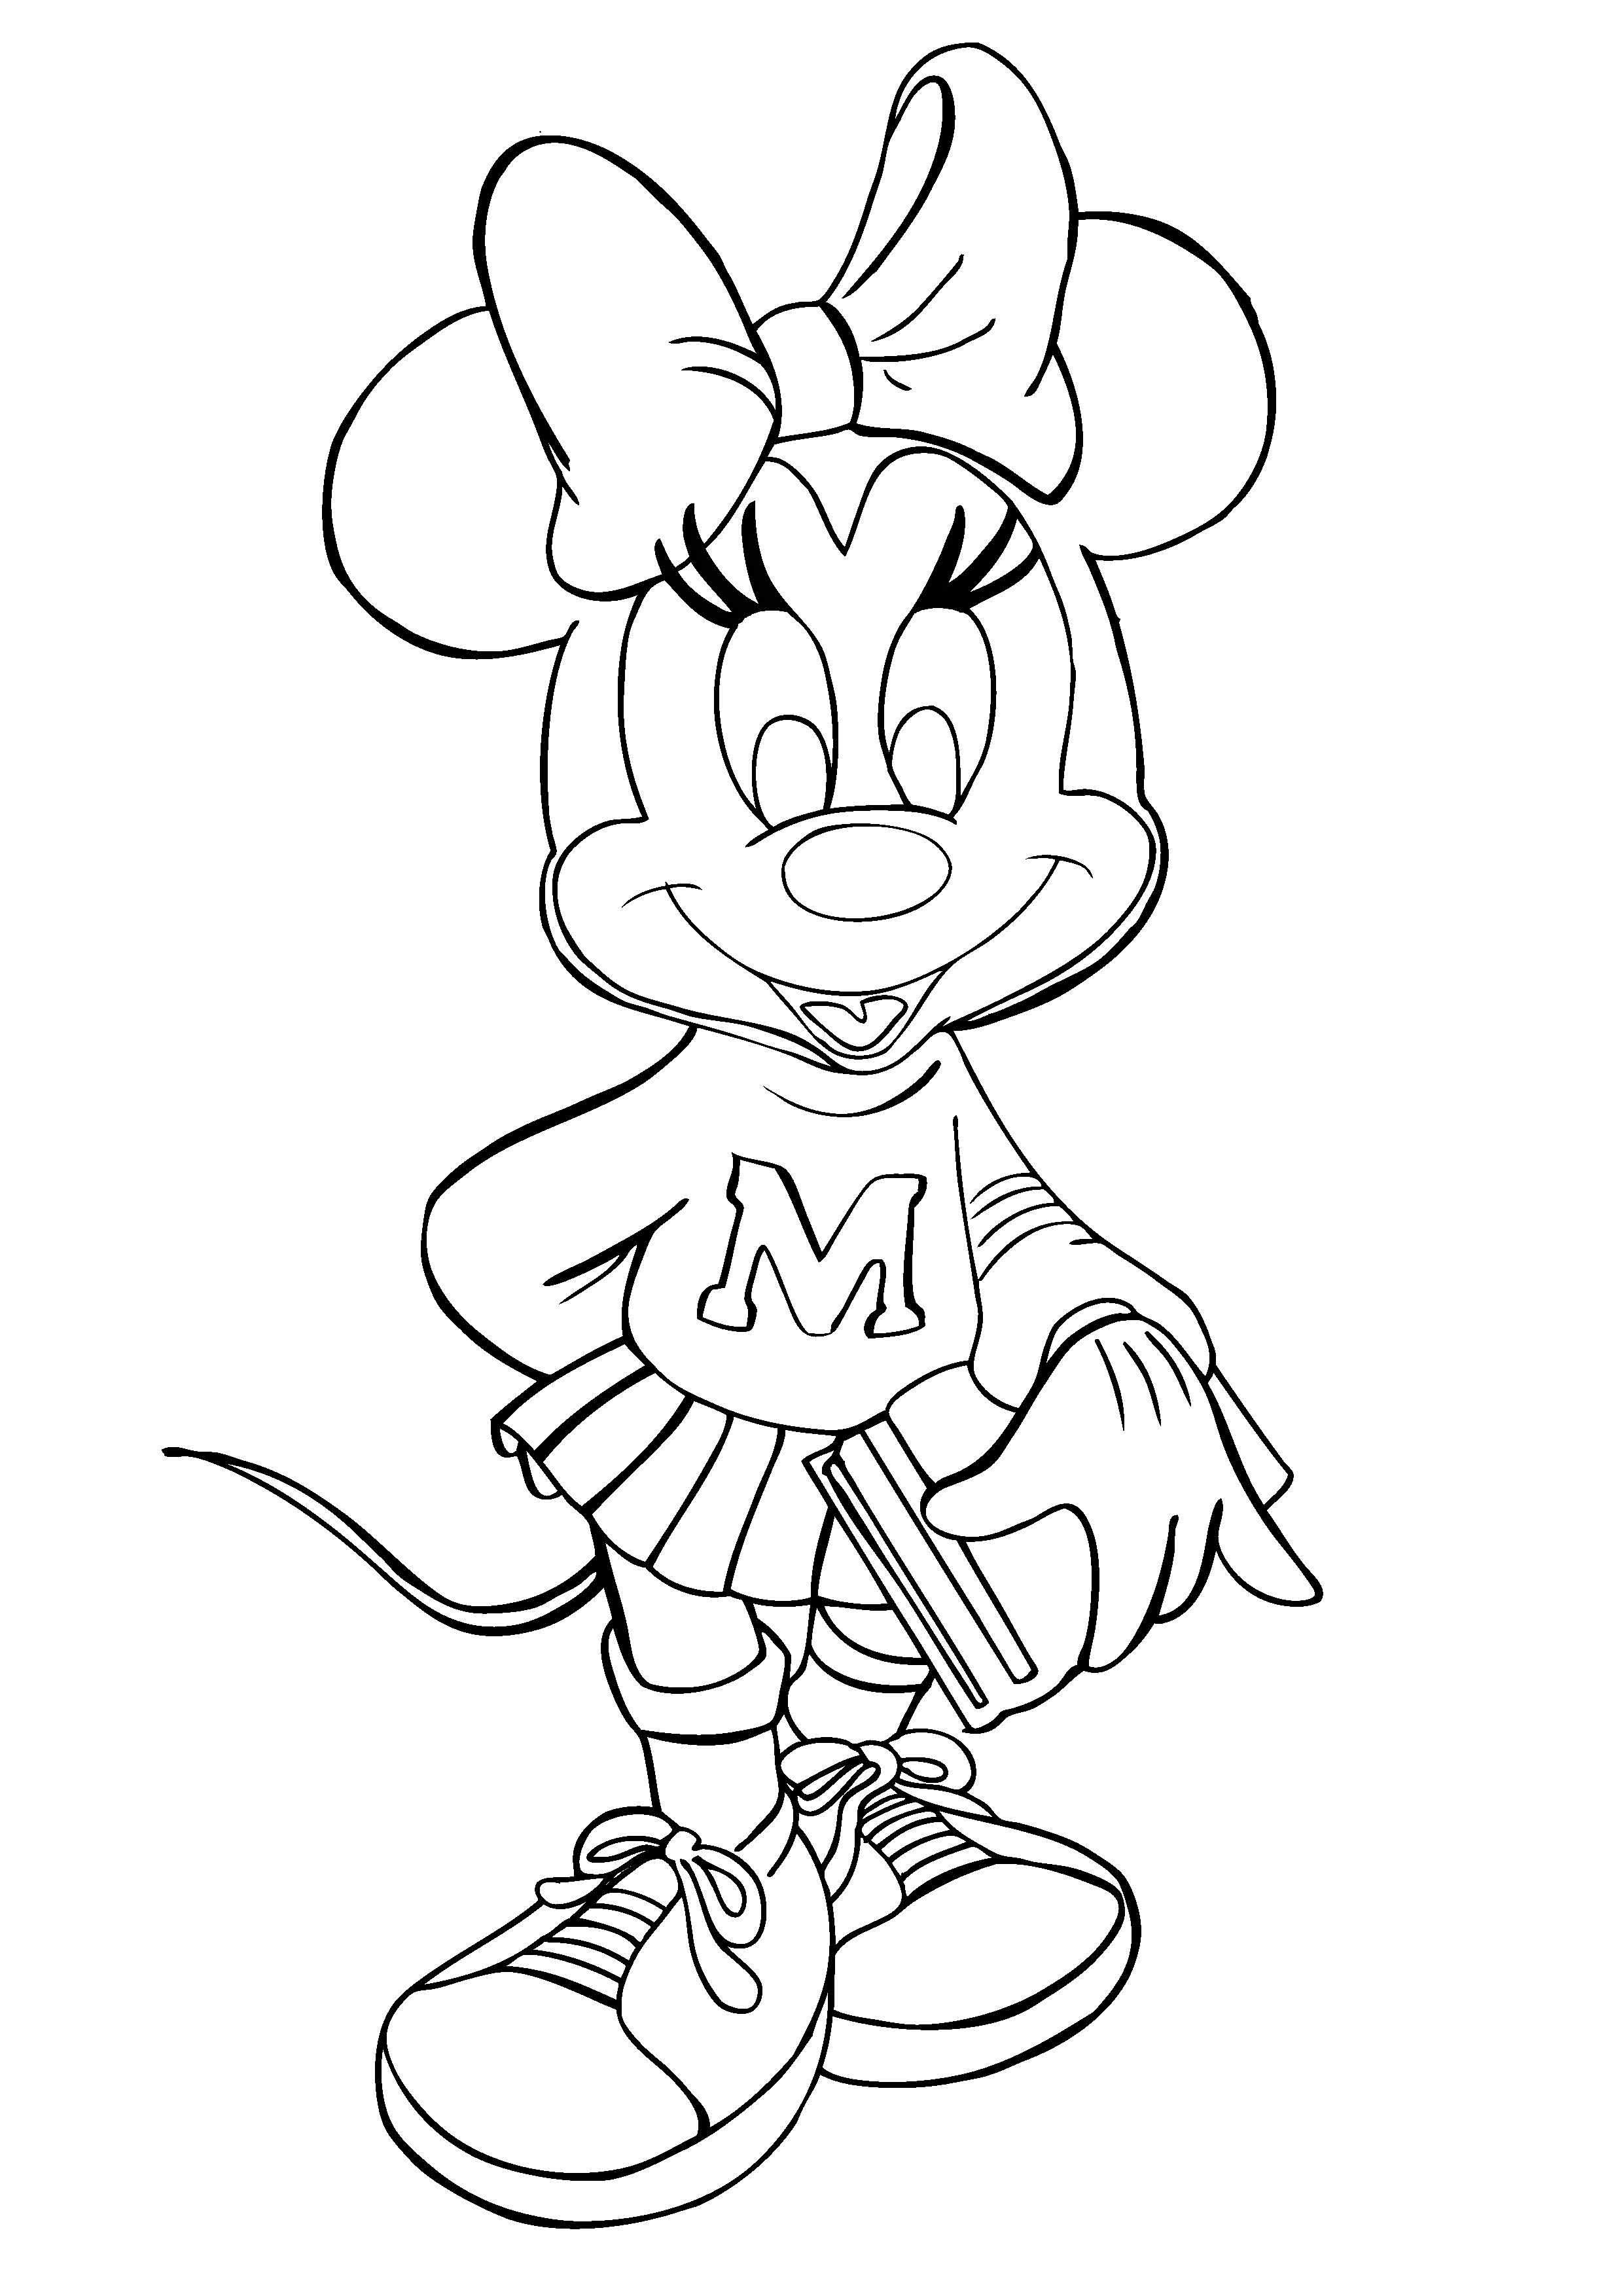 Minnie flower coloring pages ~ Cute Baby Minnie Flower Disney Coloring Pages For Kids ...